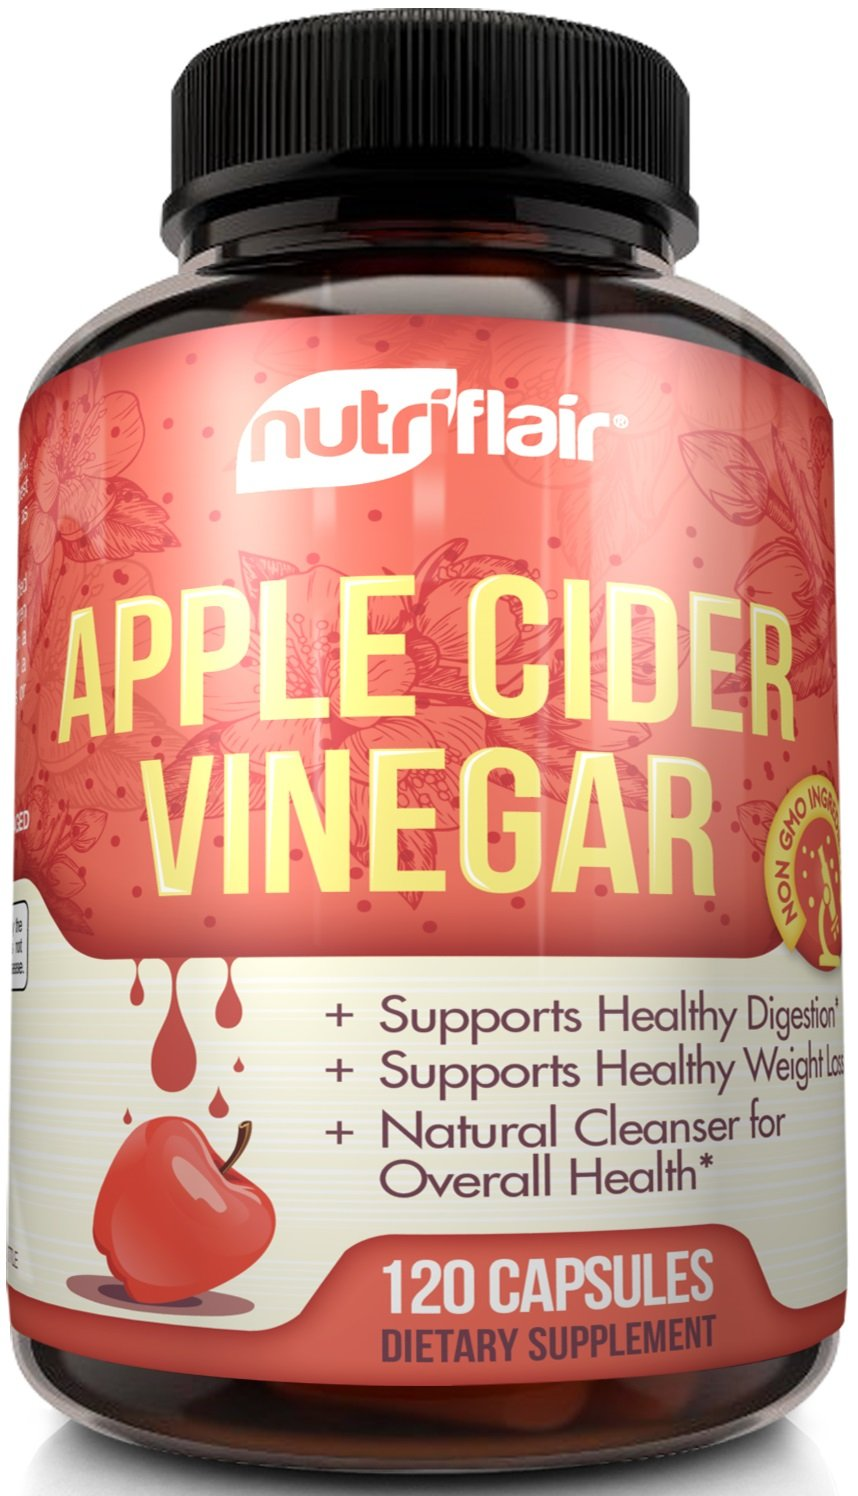 Apple Cider Vinegar Pills Extra Strength 1250MG Daily (120 VEGETABLE CAPSULES) -Tested & Proven Results or Money Back - All Natural Non GMO Cider Capsules Supplement for Weight Loss, Detox & Digestion